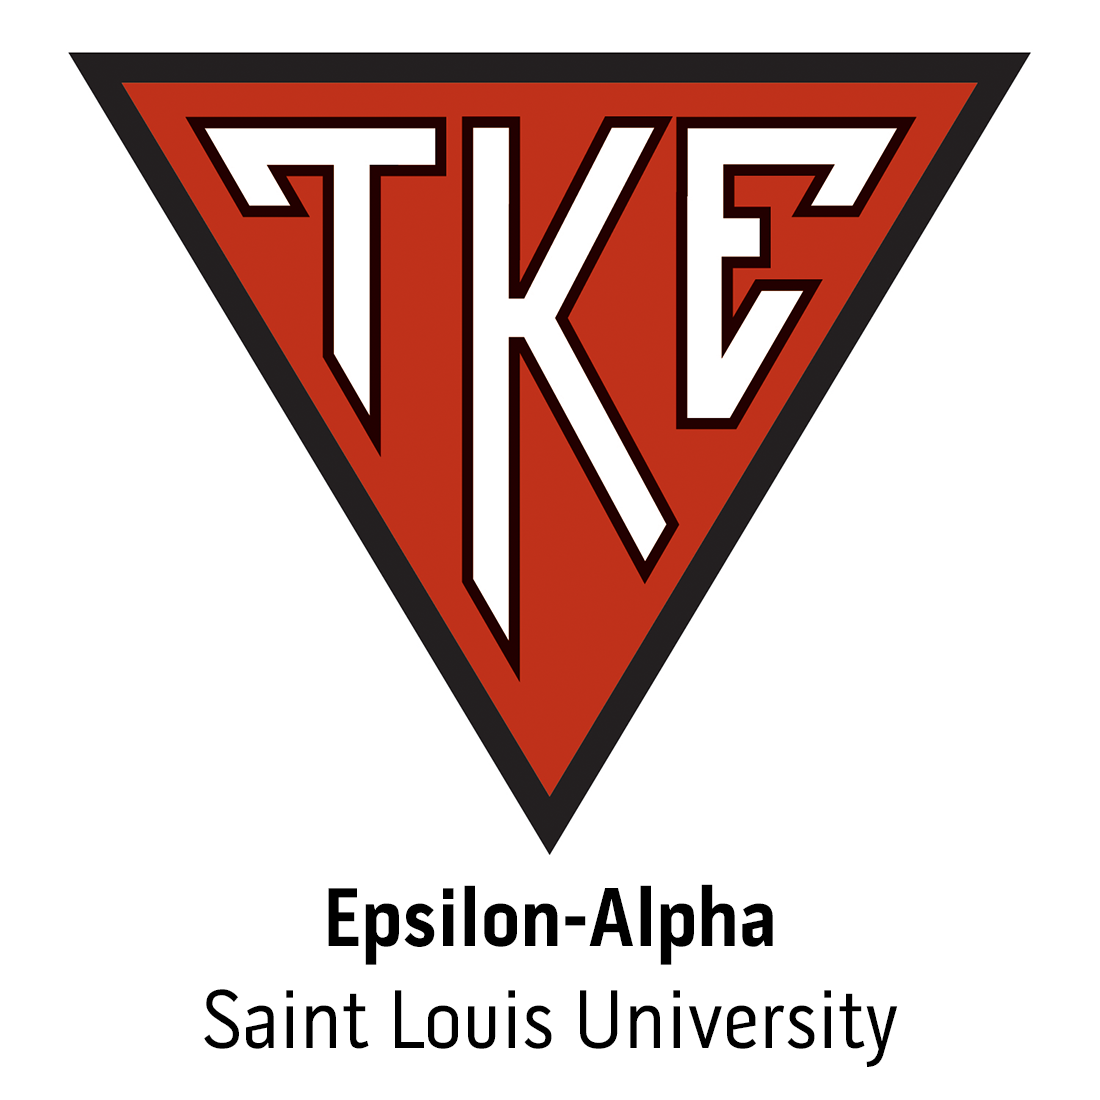 Epsilon-Alpha Chapter at Saint Louis University